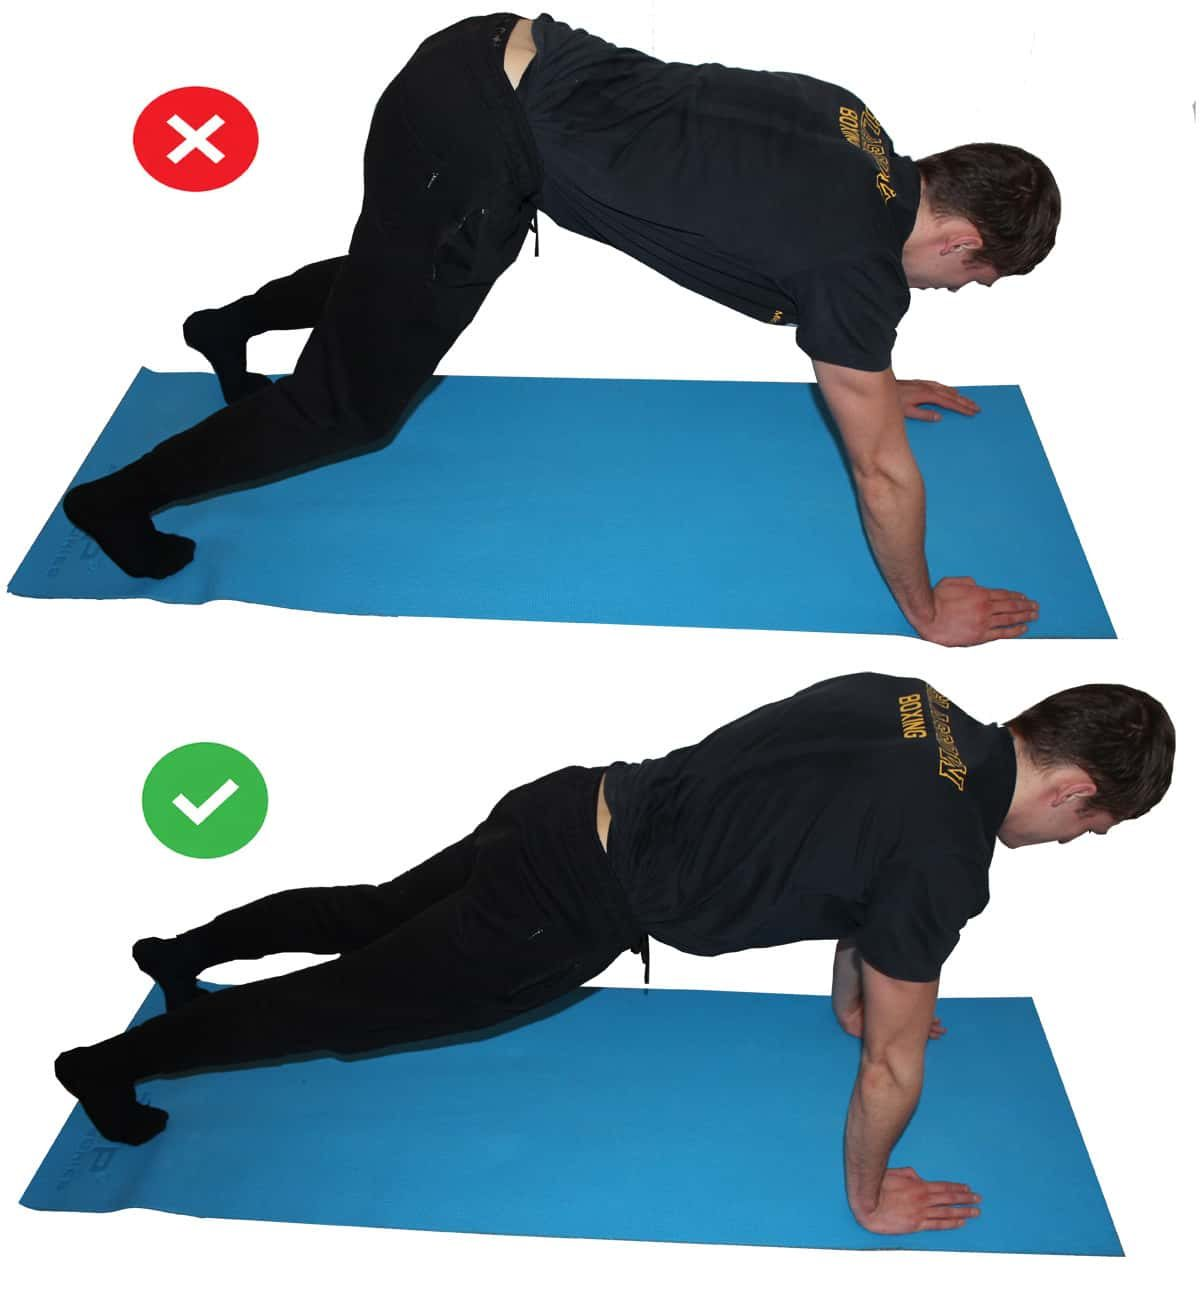 Proper pushup form: demonstration of the mistake in a side by side comparison of pushing the hips too high.